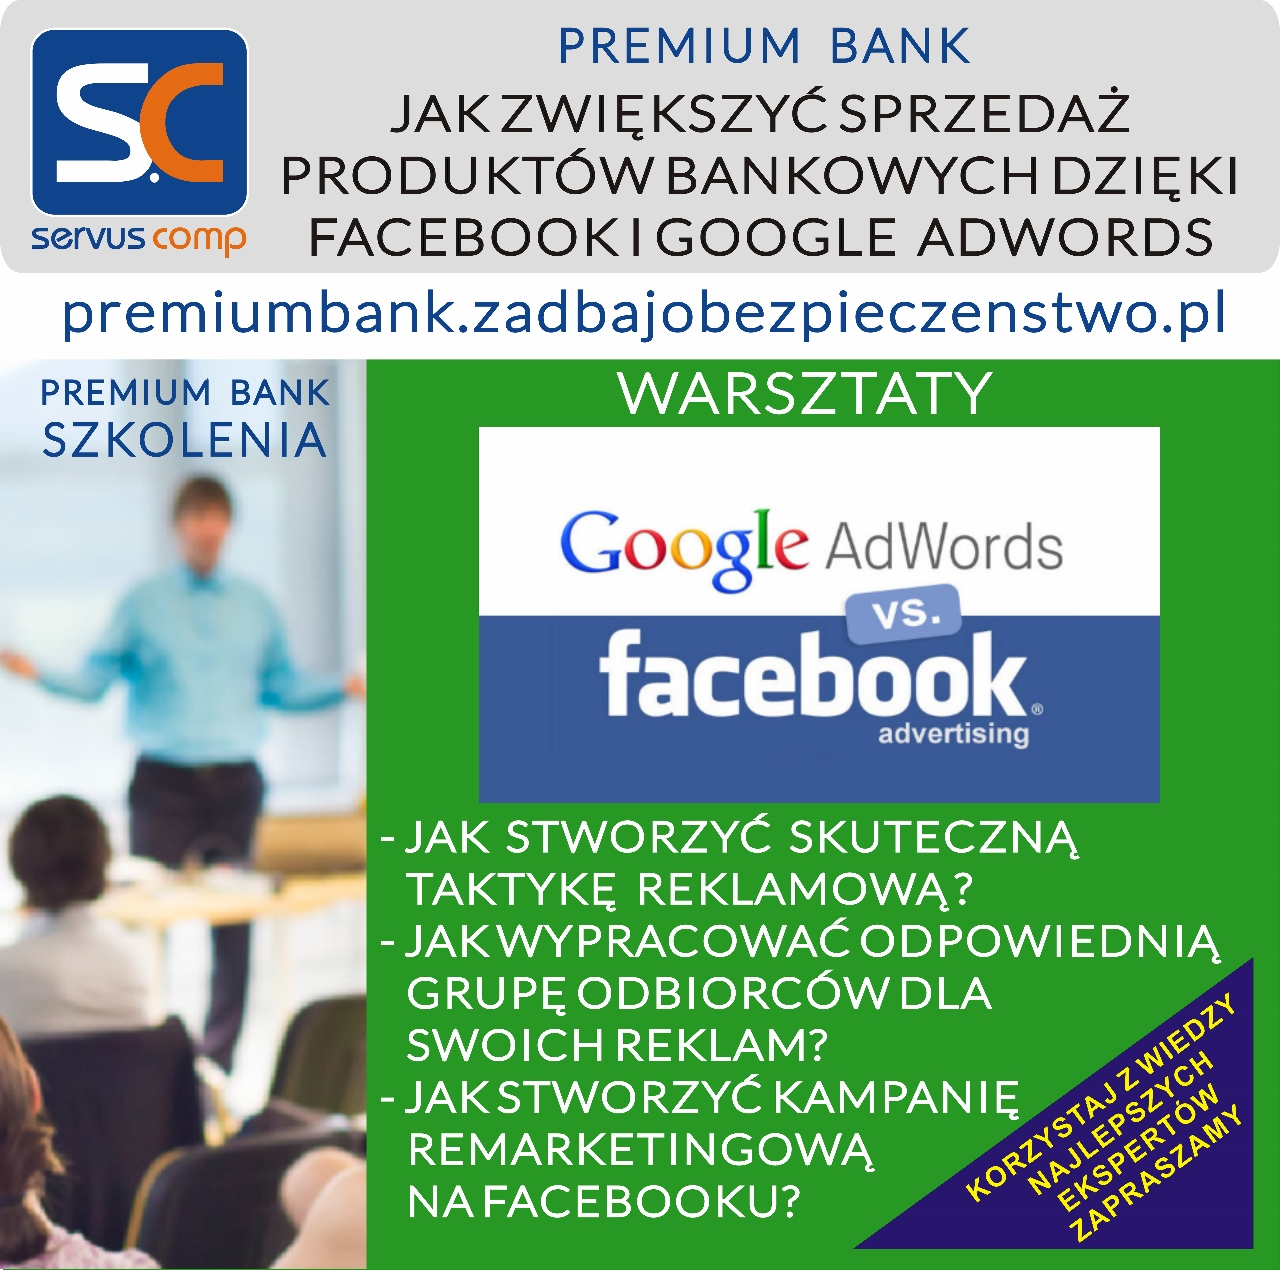 FACEBOOK GOOGLE ADWORDS